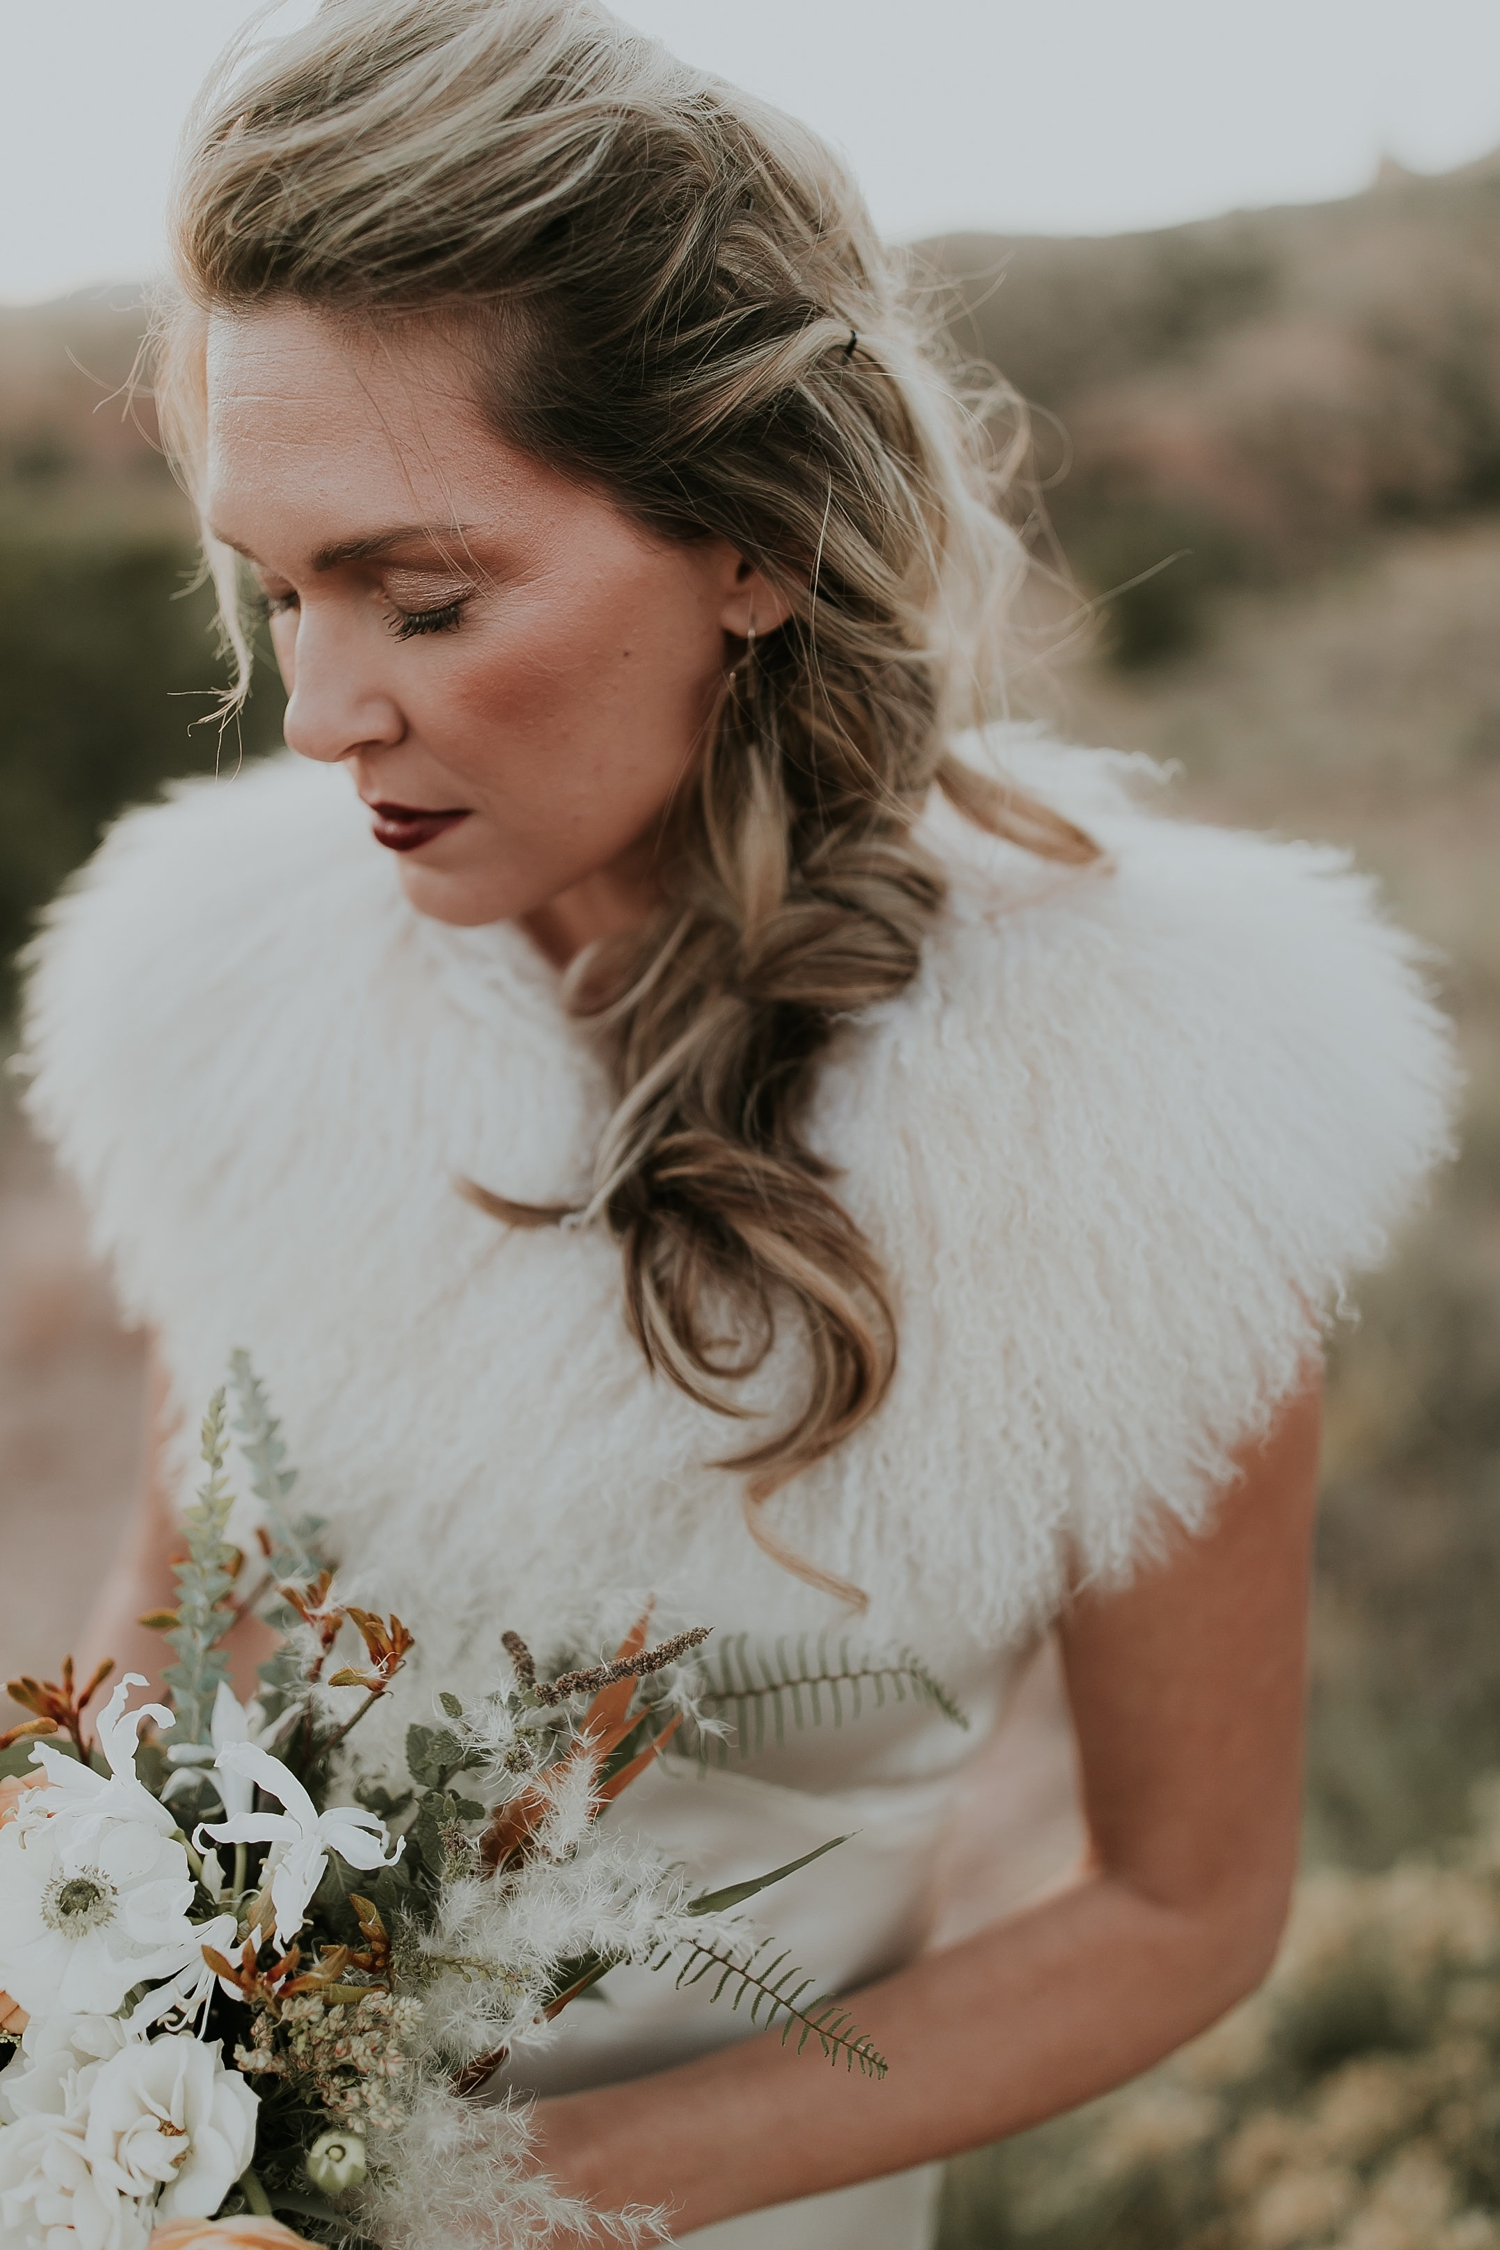 Alicia+lucia+photography+-+albuquerque+wedding+photographer+-+santa+fe+wedding+photography+-+new+mexico+wedding+photographer+-+new+mexico+ghost+ranch+wedding+-+styled+wedding+shoot_0080.jpg